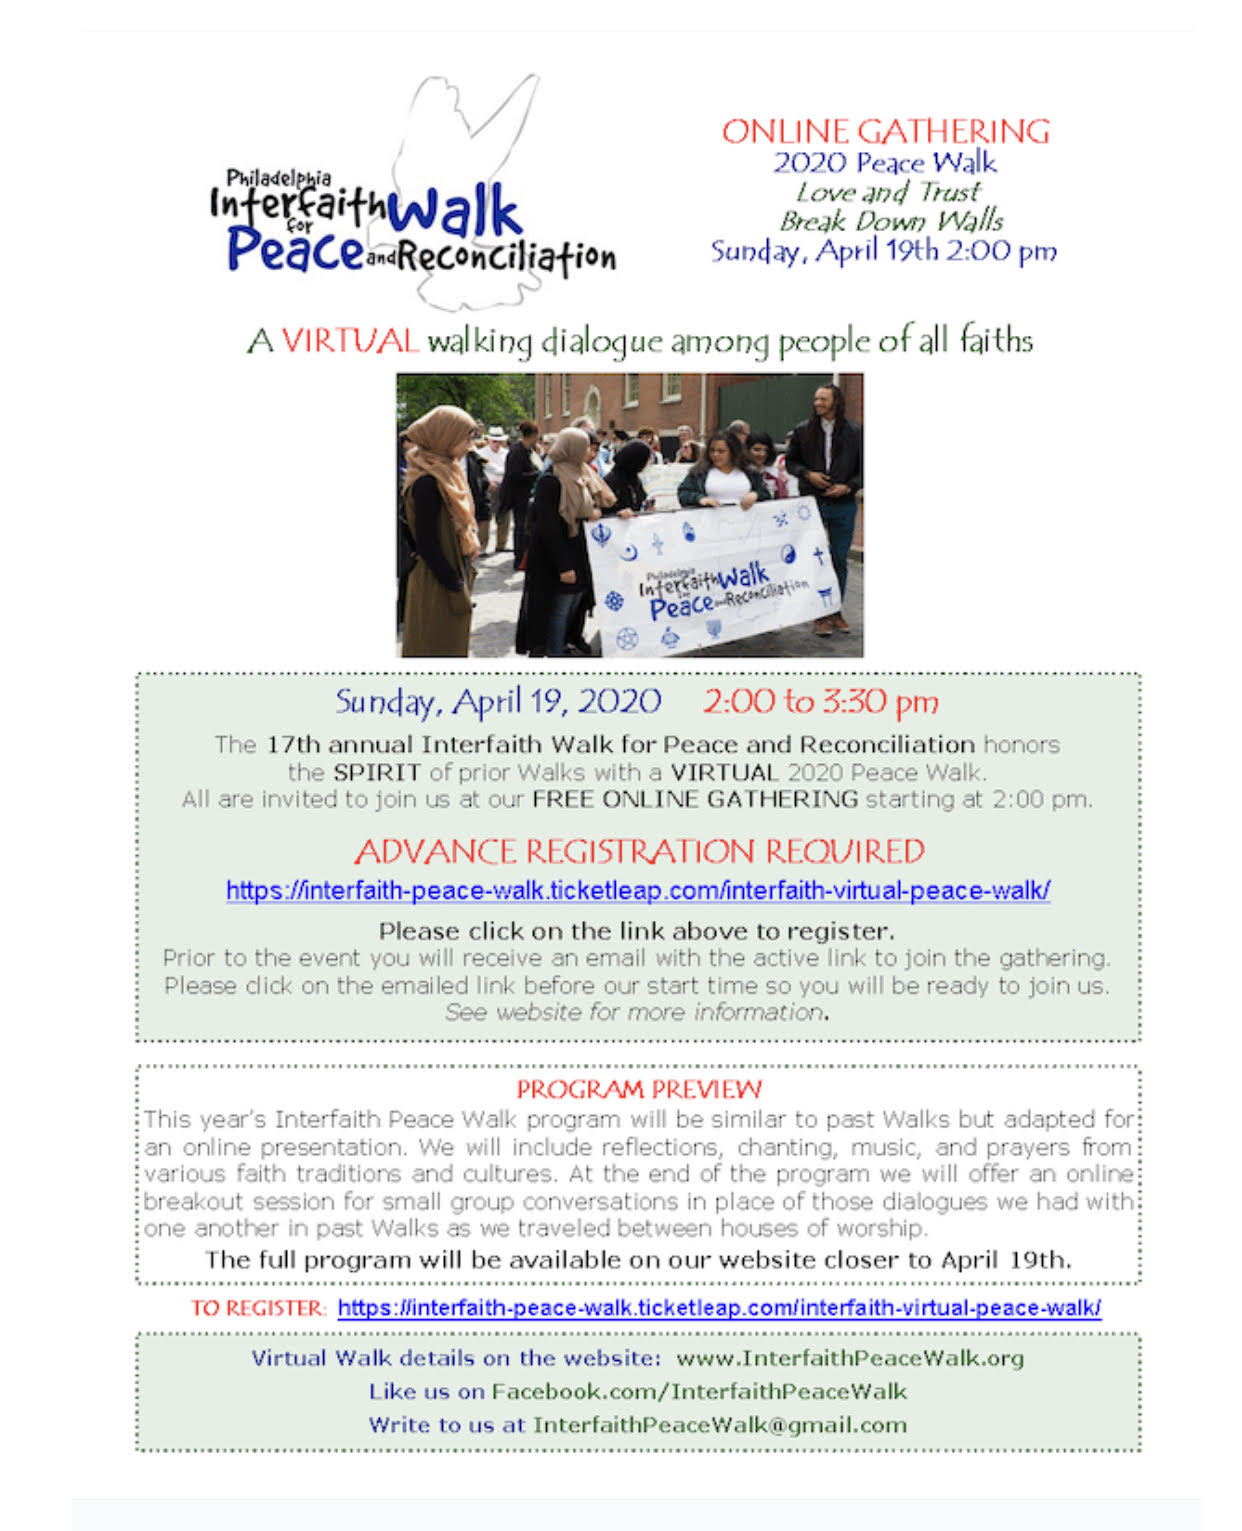 peacewalk-2020